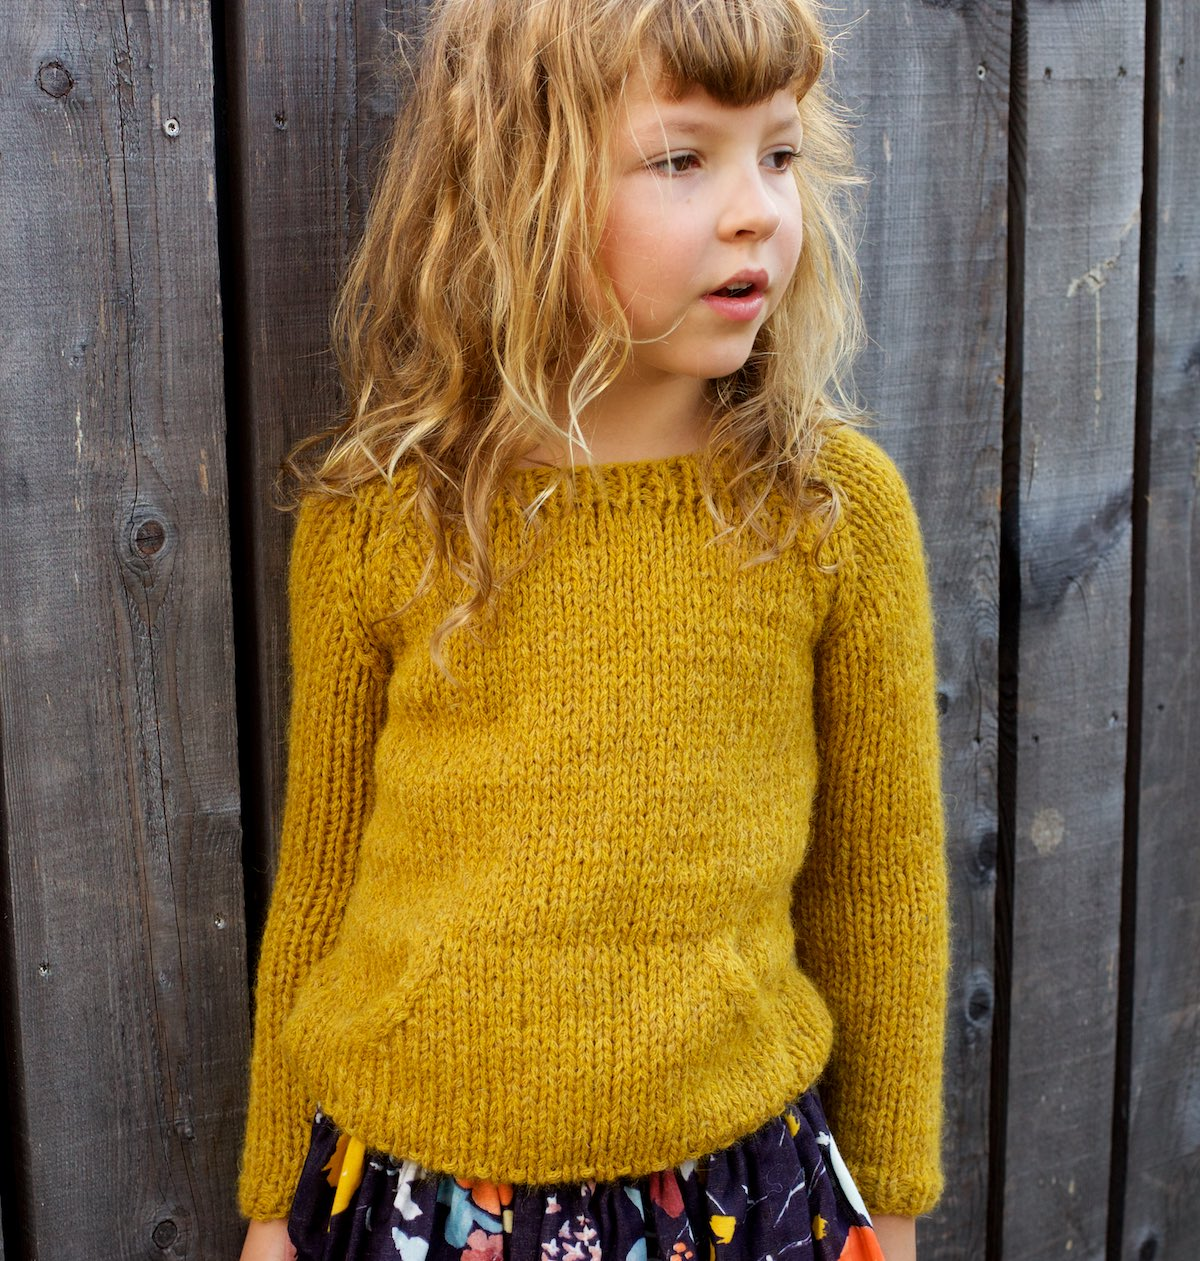 Quokka sweater knitting pattern for kids compagnie m quokka sweater knitting pattern bankloansurffo Image collections